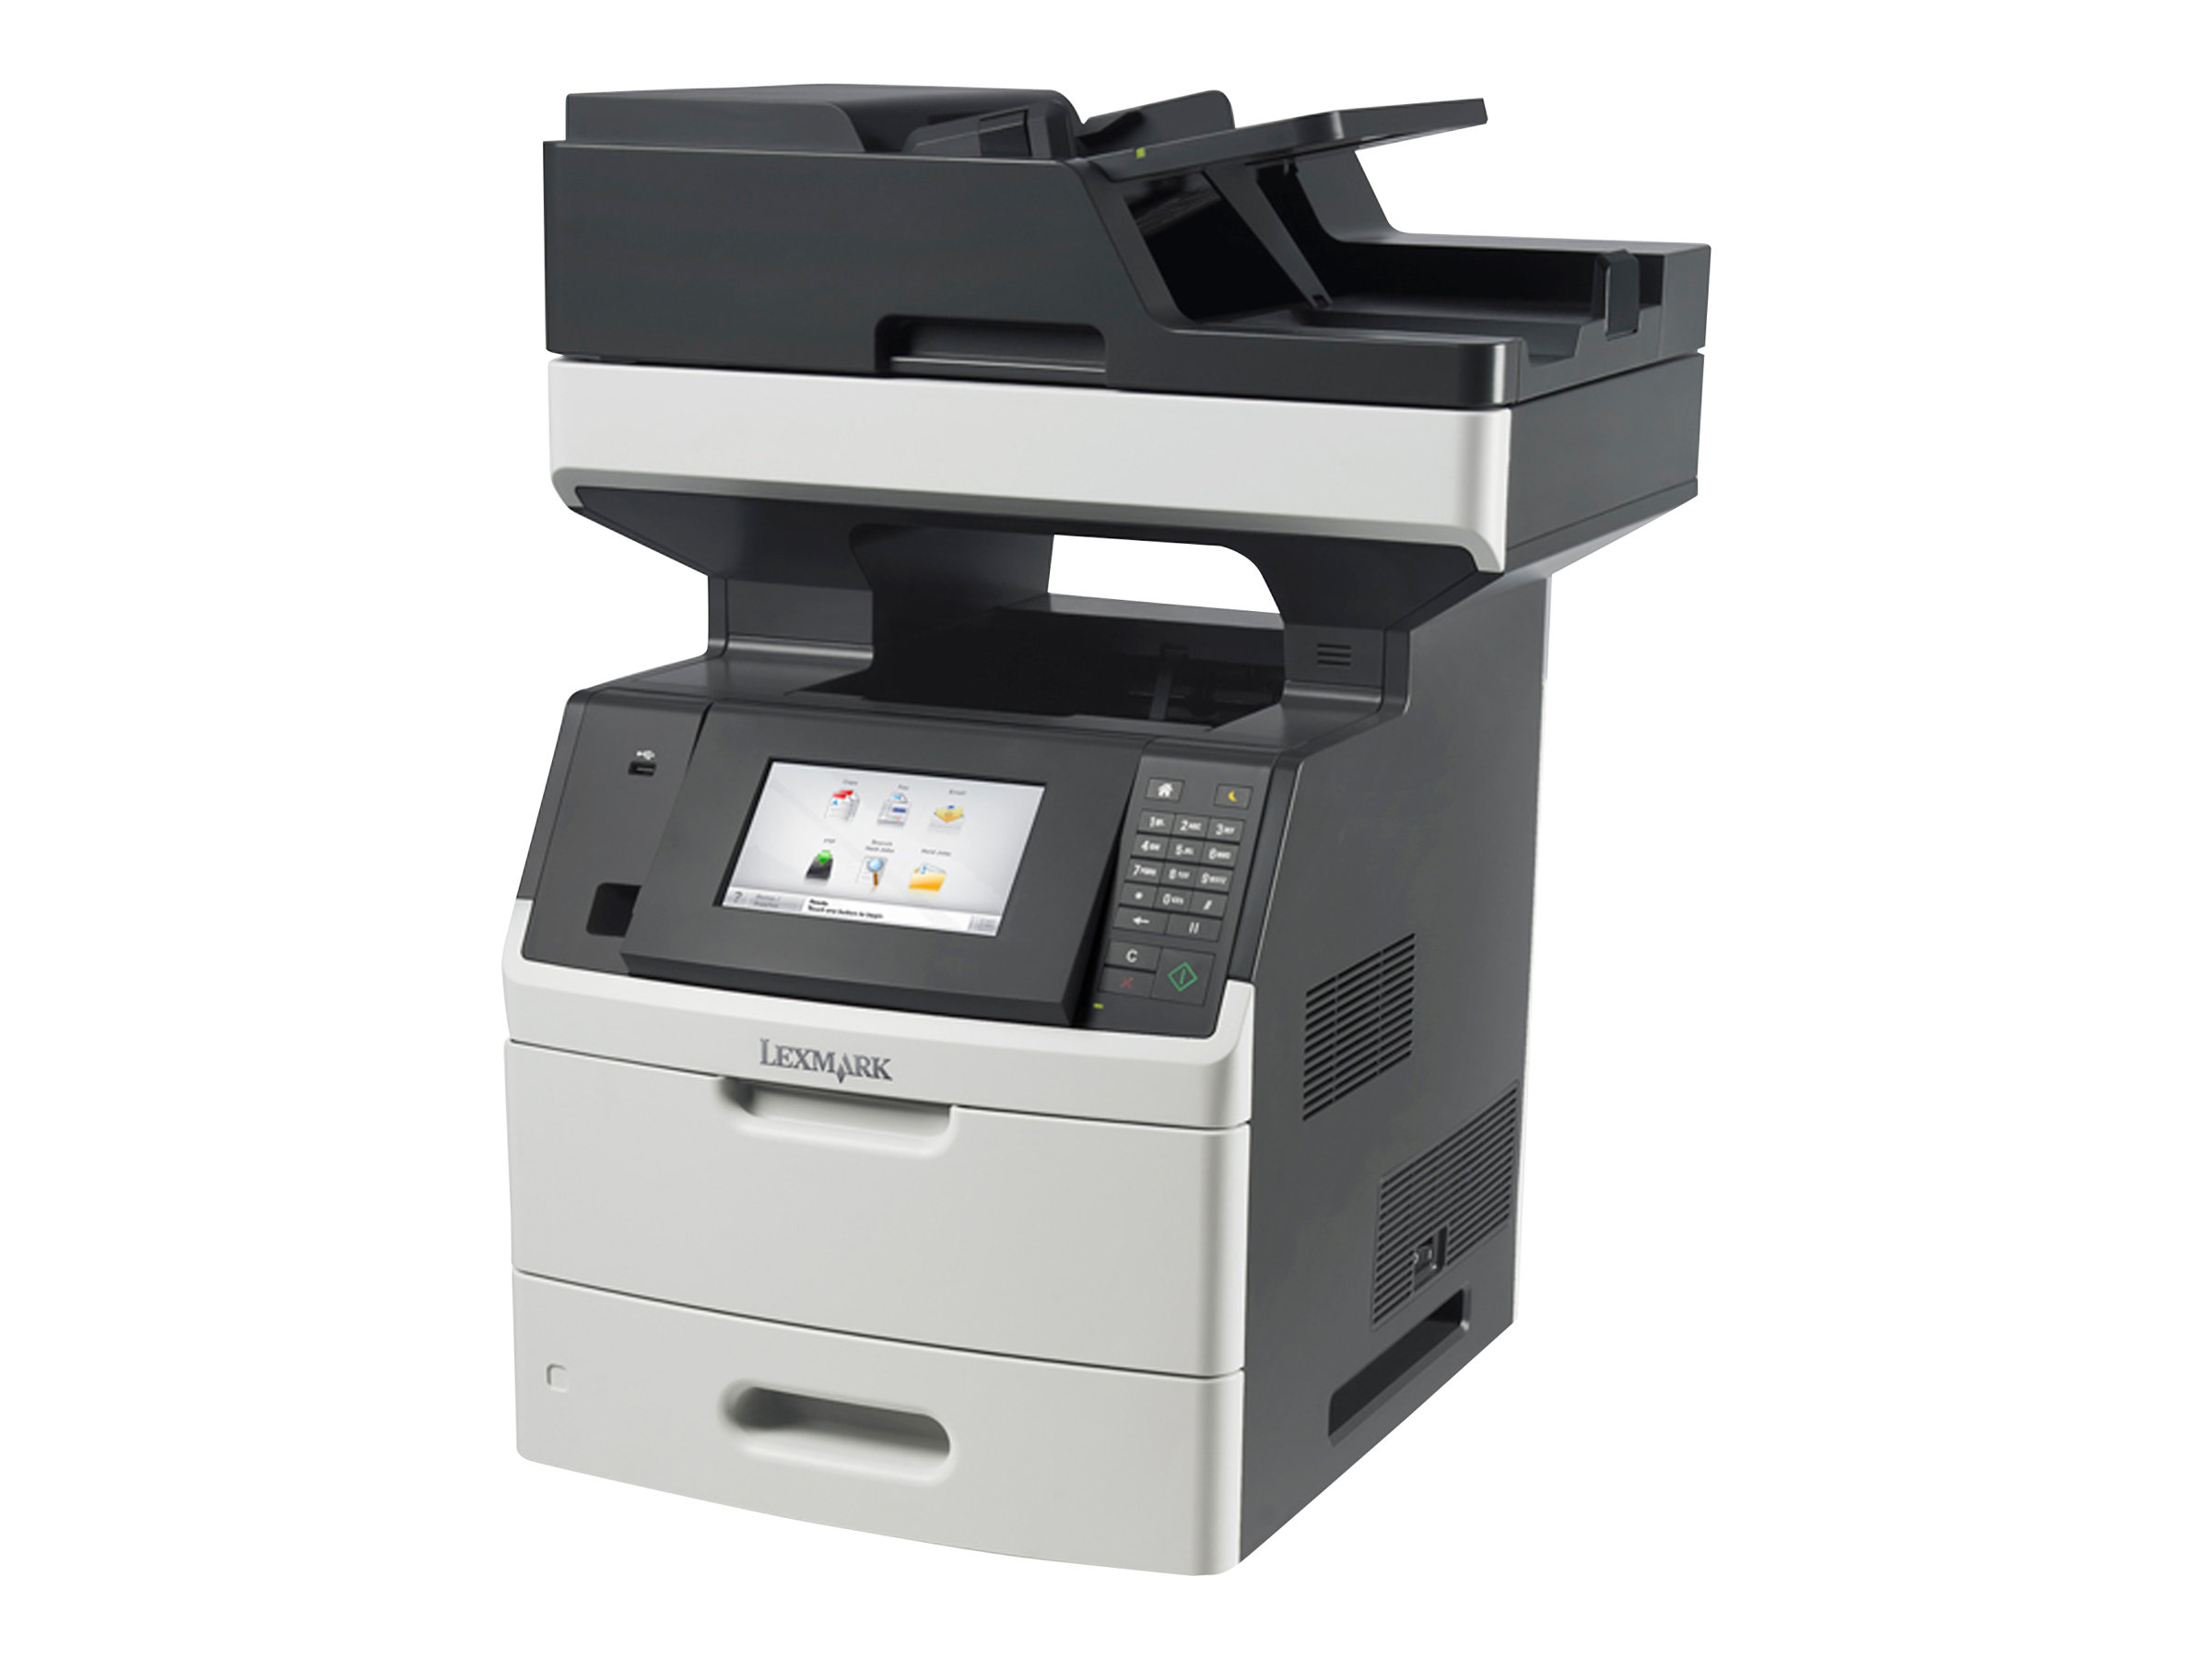 Lexmark MX710de - Multifunktionsdrucker - s/w - Laser - Legal (216 x 356 mm) (Original) - Legal (Medien)